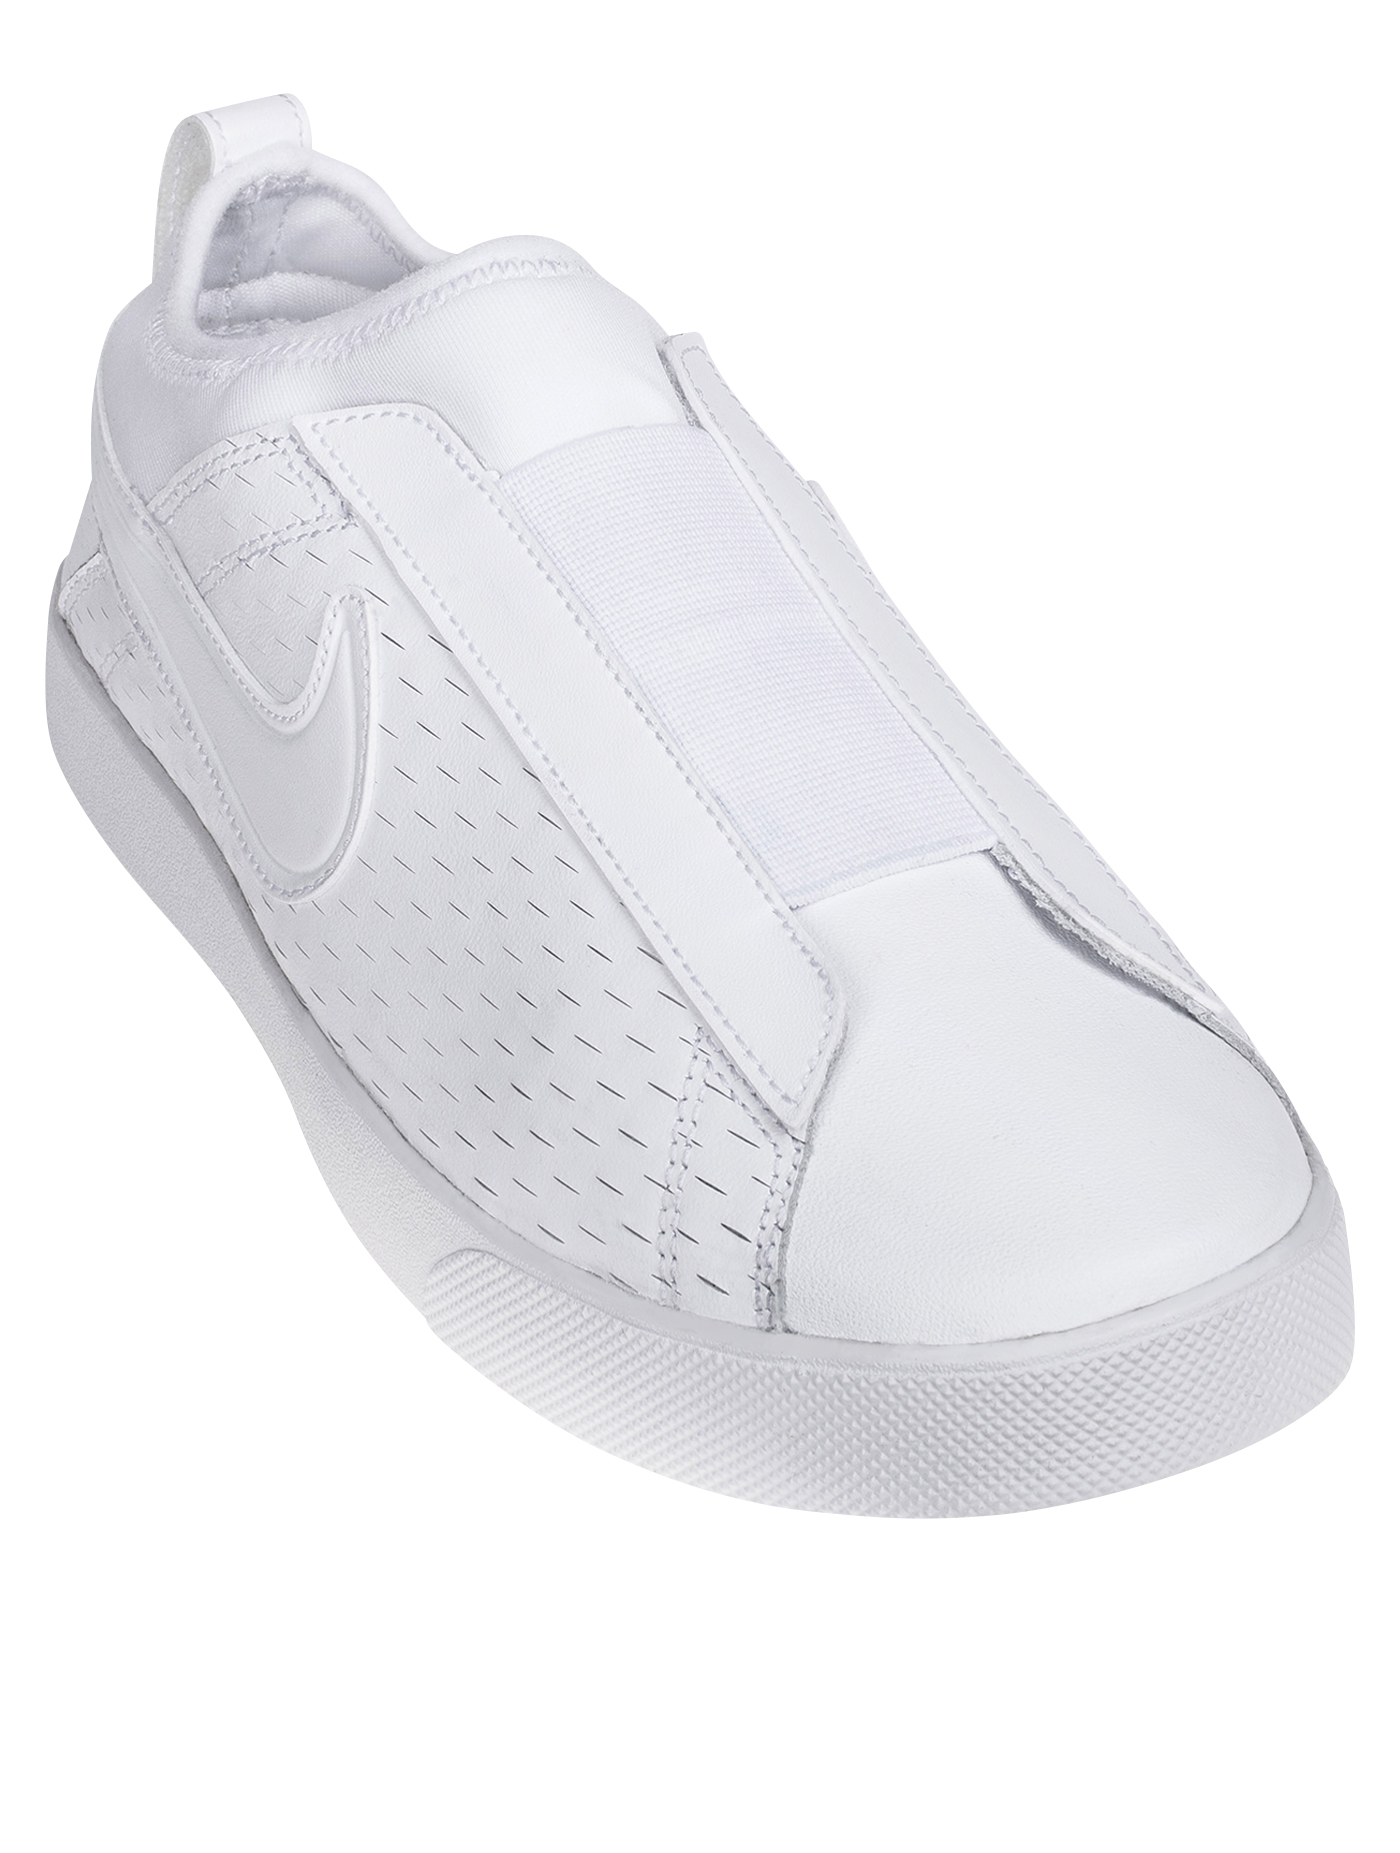 0cdb4a2006f NIKE Women's Casual Shoes Racquette '17 Slip-On Size US5 902861-100 Size